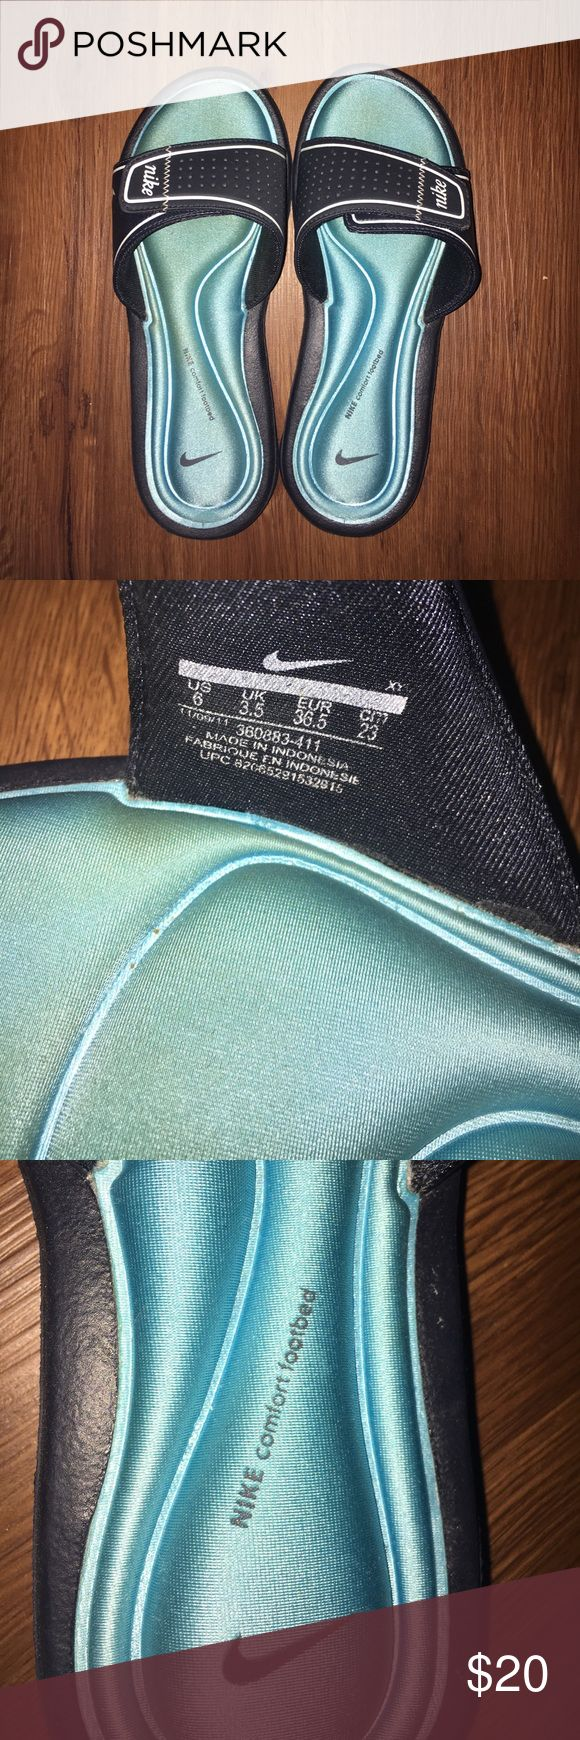 Nike Comfort Footbed sandals size 6 Blue Nike sandals with comfort super squishy footbed. Size 6. Slip on but also has a Velcro adjustable strap. Excellent condition, barely worn! Nike Shoes Sandals